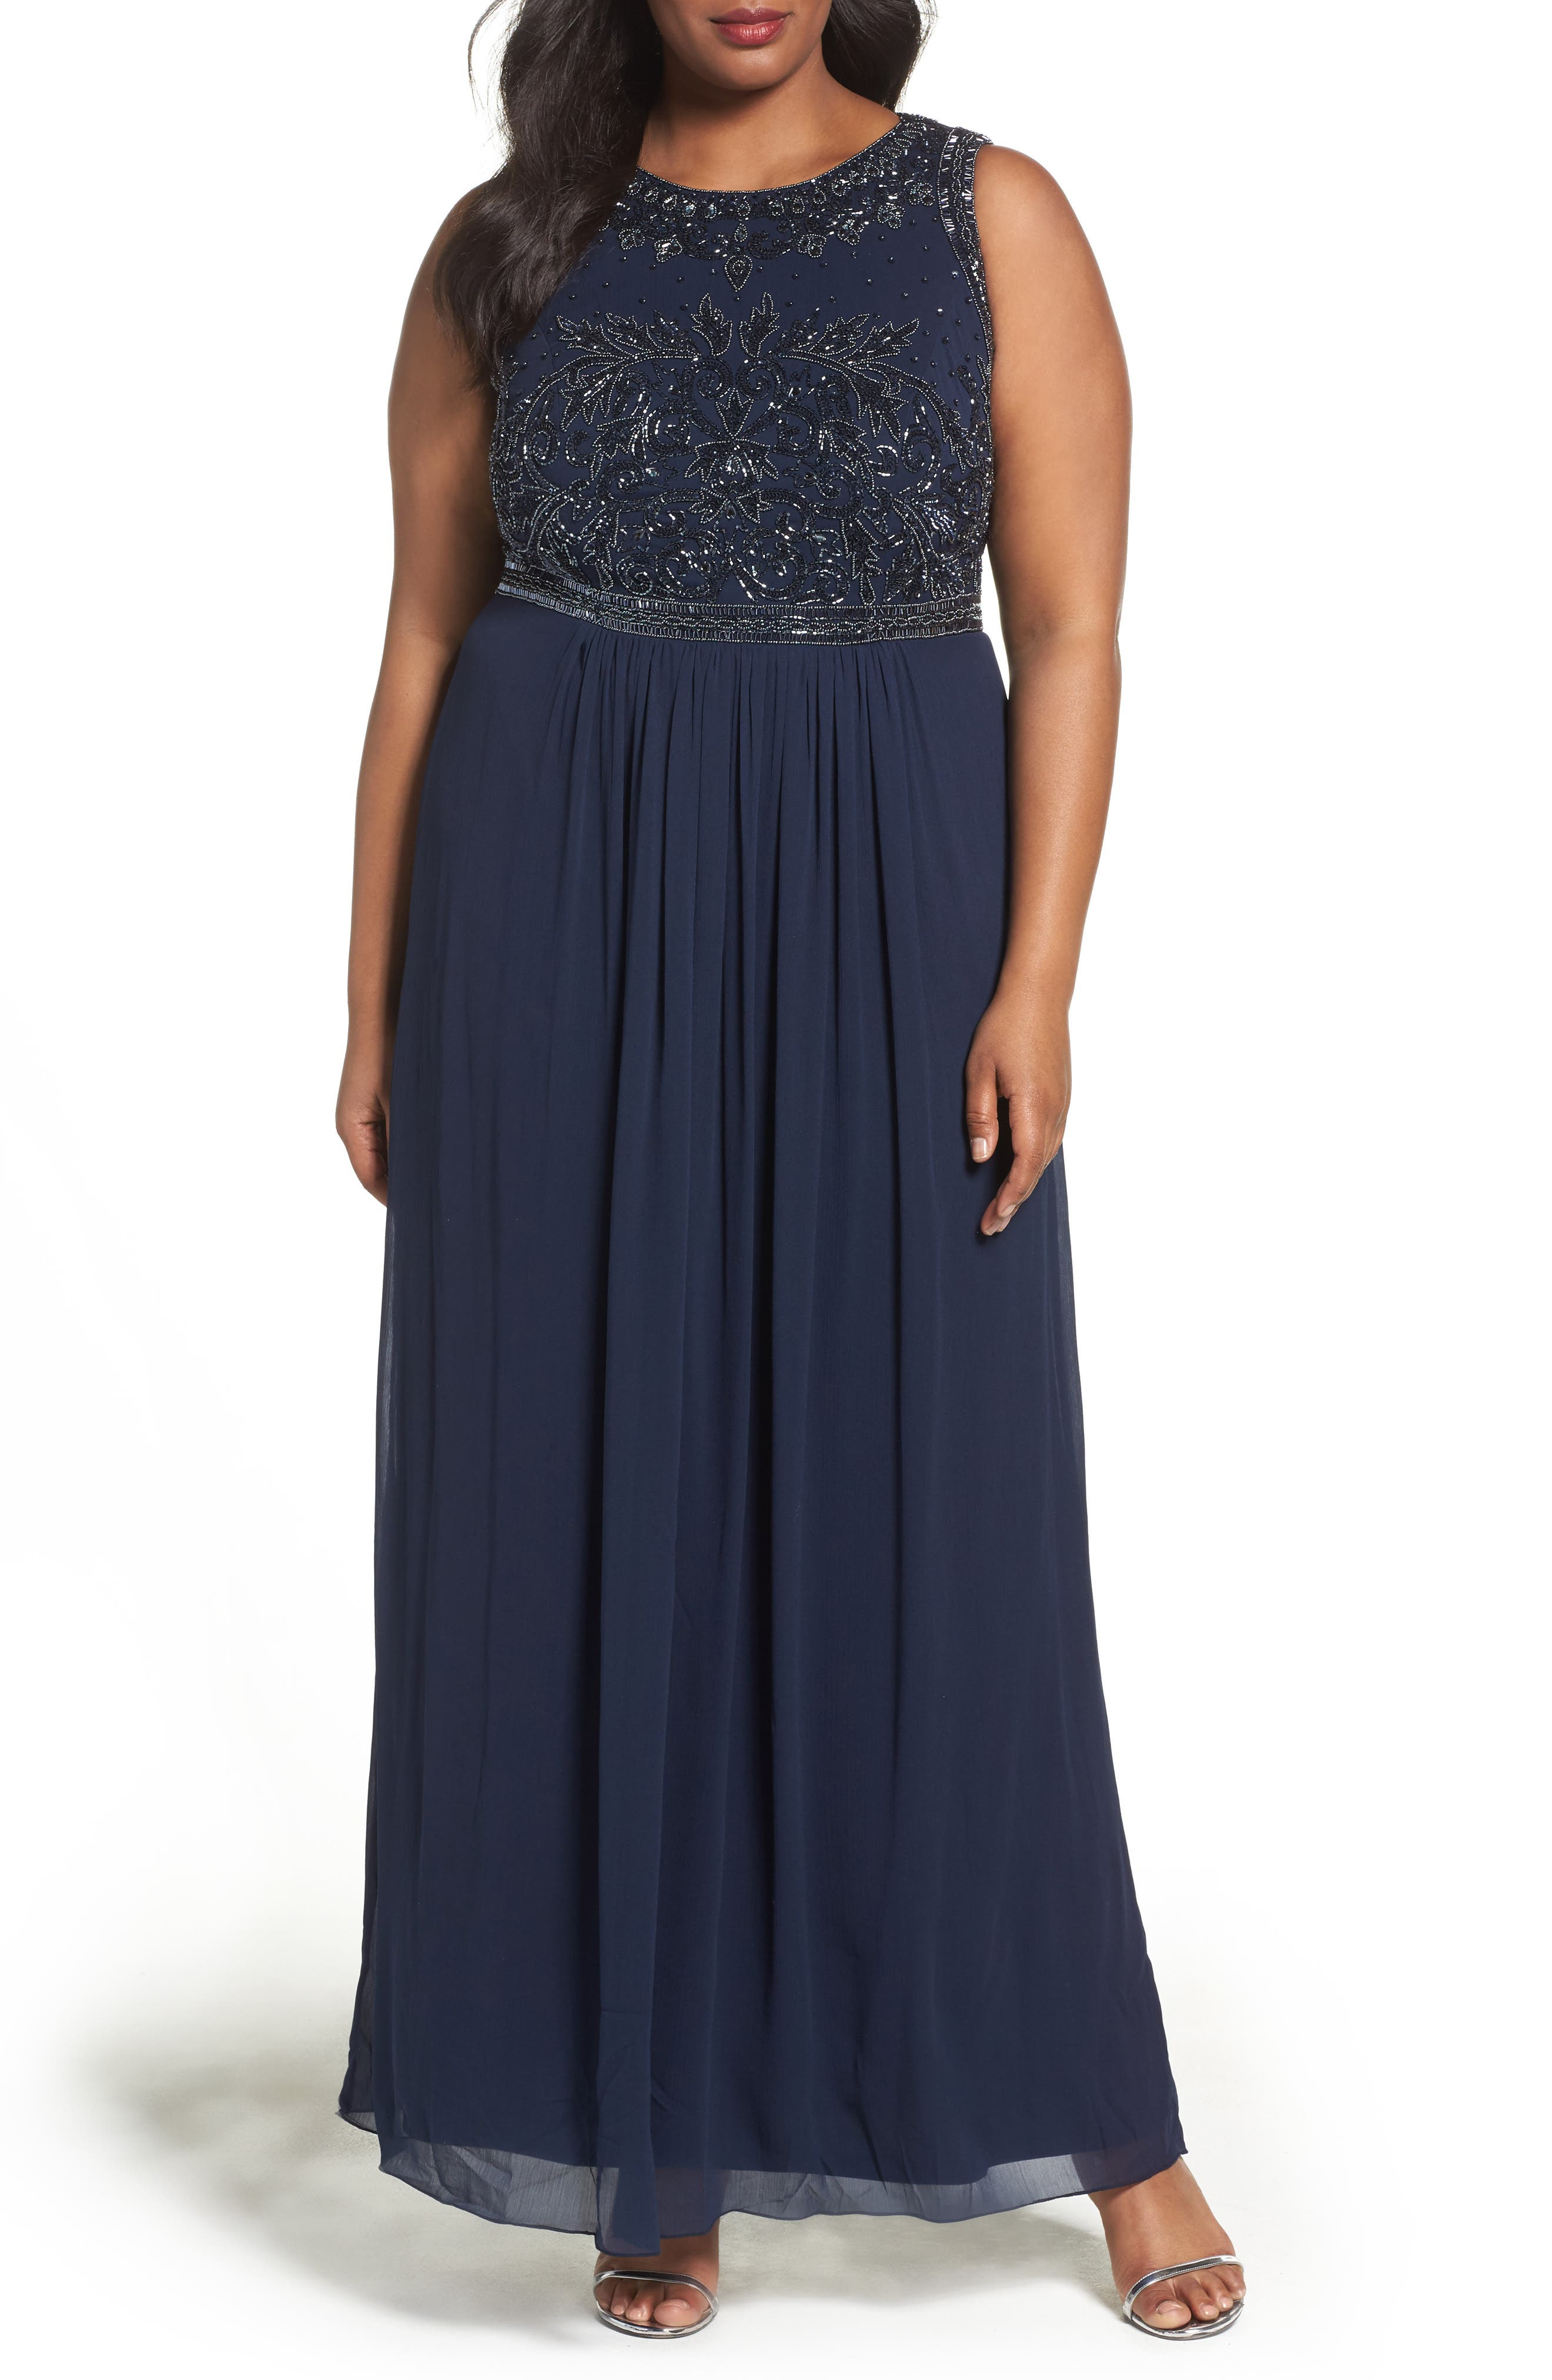 Adrianna Papell Beaded Chiffon A-Line Gown (Plus Size)